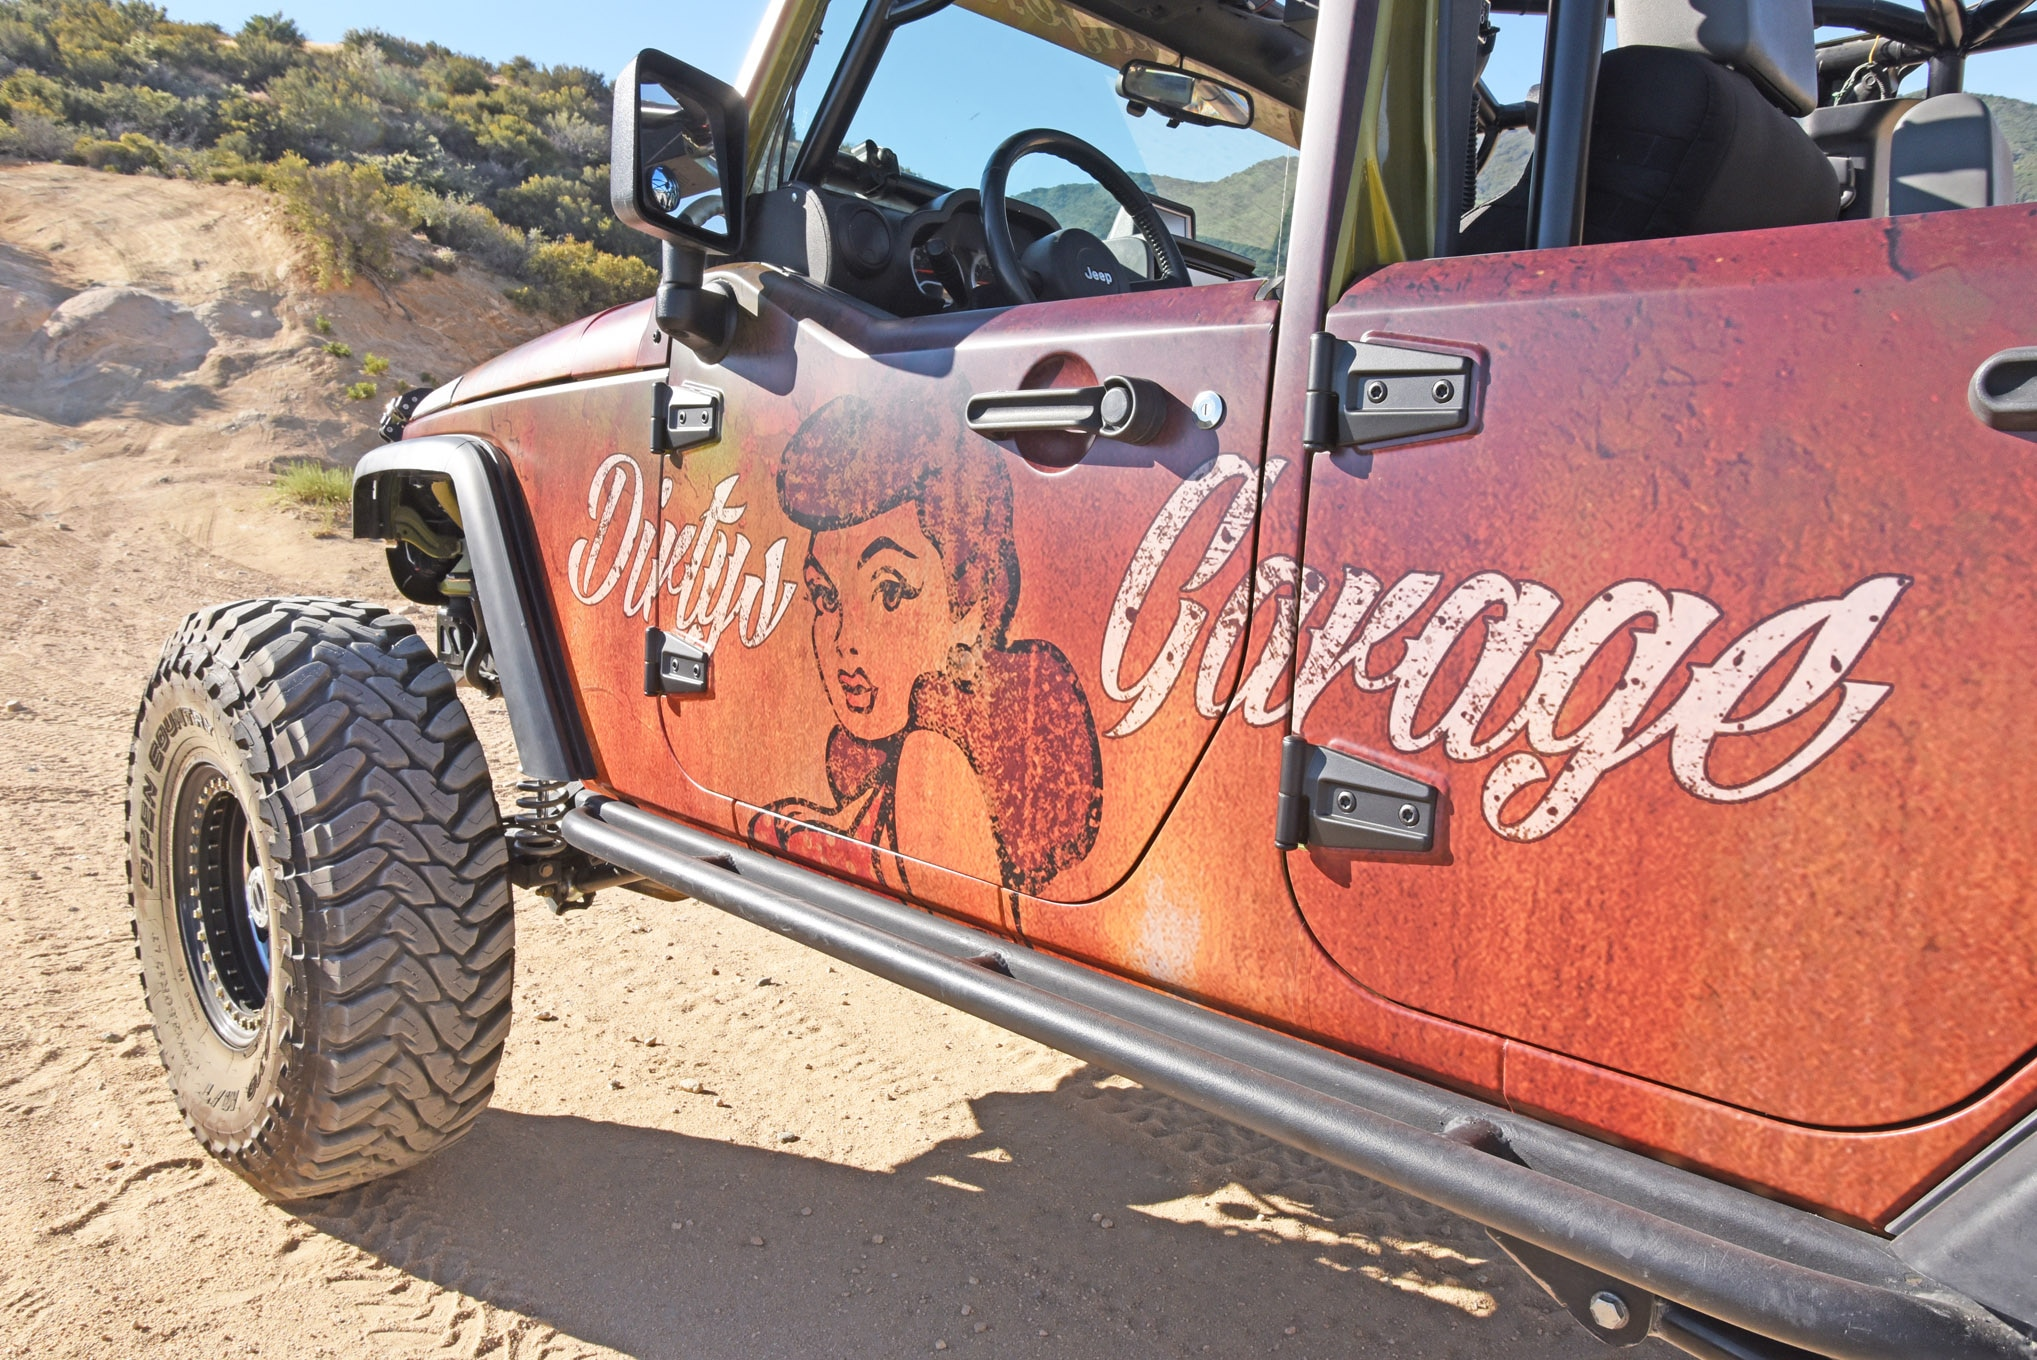 Scott not only uses his Jeep JKU as a daily driver, shop truck, and trail cruiser, it also serves as a wheelin' billboard for his custom 4x4 shop, Dirty's Garage. We like the patina and pinup styling he chose for the wrap.